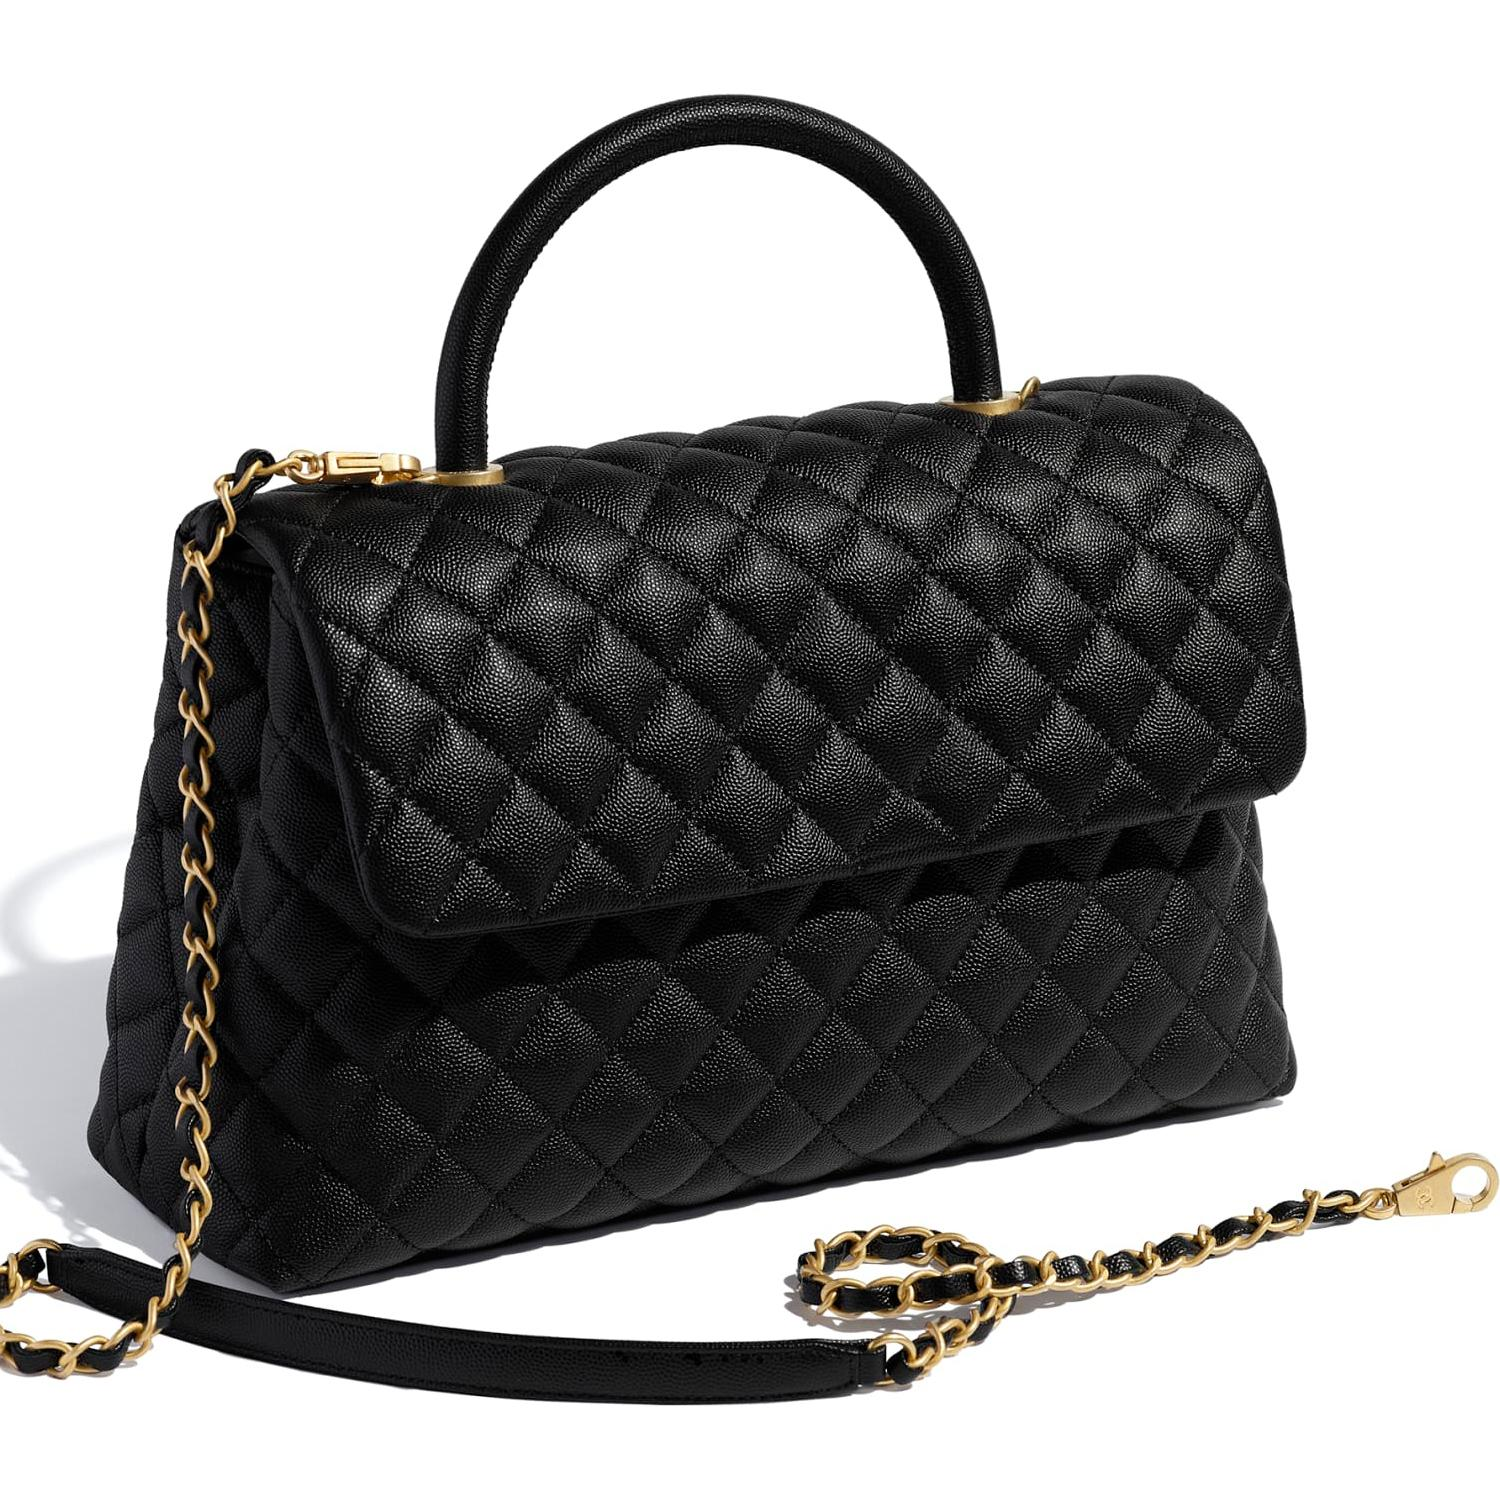 bc8d73adc Hot Sale Fashion Vintage Handbags Women Bags Designer Handbags Wallets For  Women Leather Chain Bag Crossbody And Shoulder Bags With Gift Bag Handbags  On ...